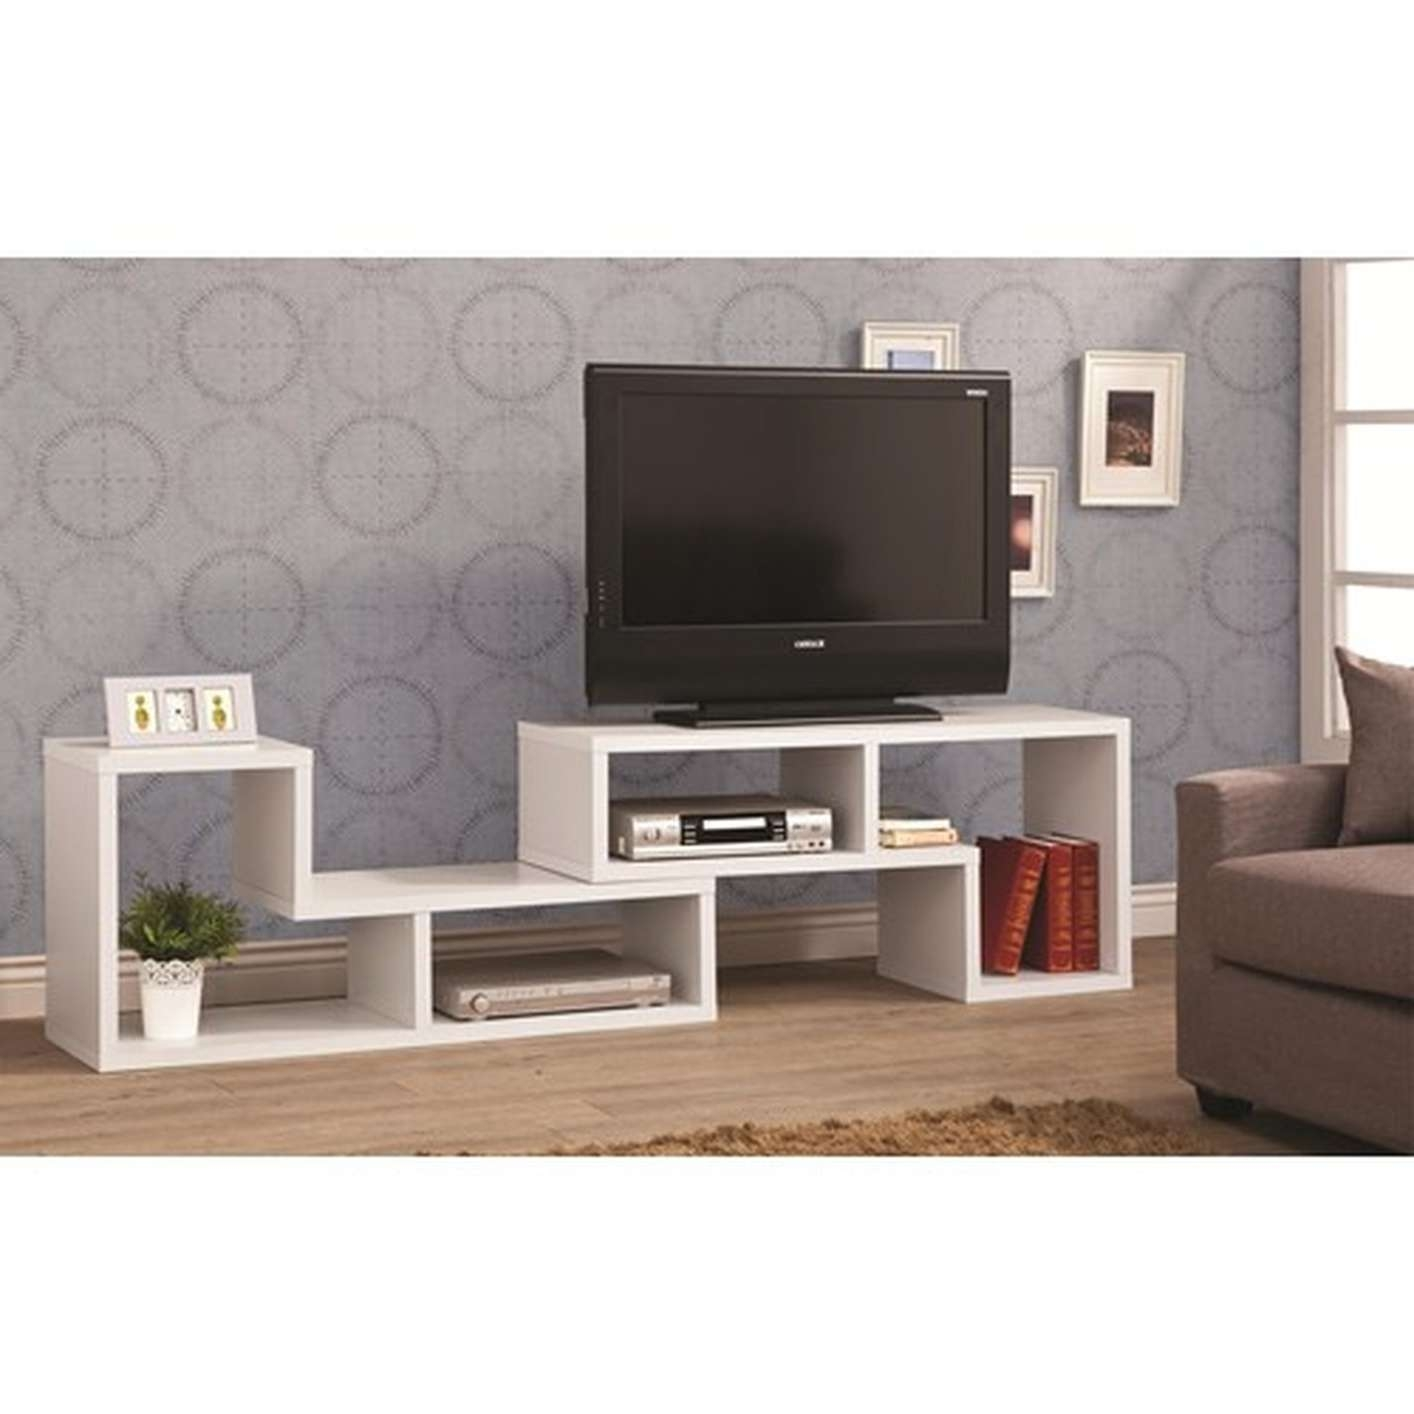 White Wood Tv Stand – Steal A Sofa Furniture Outlet Los Angeles Ca For Wood Tv Stands (View 5 of 15)